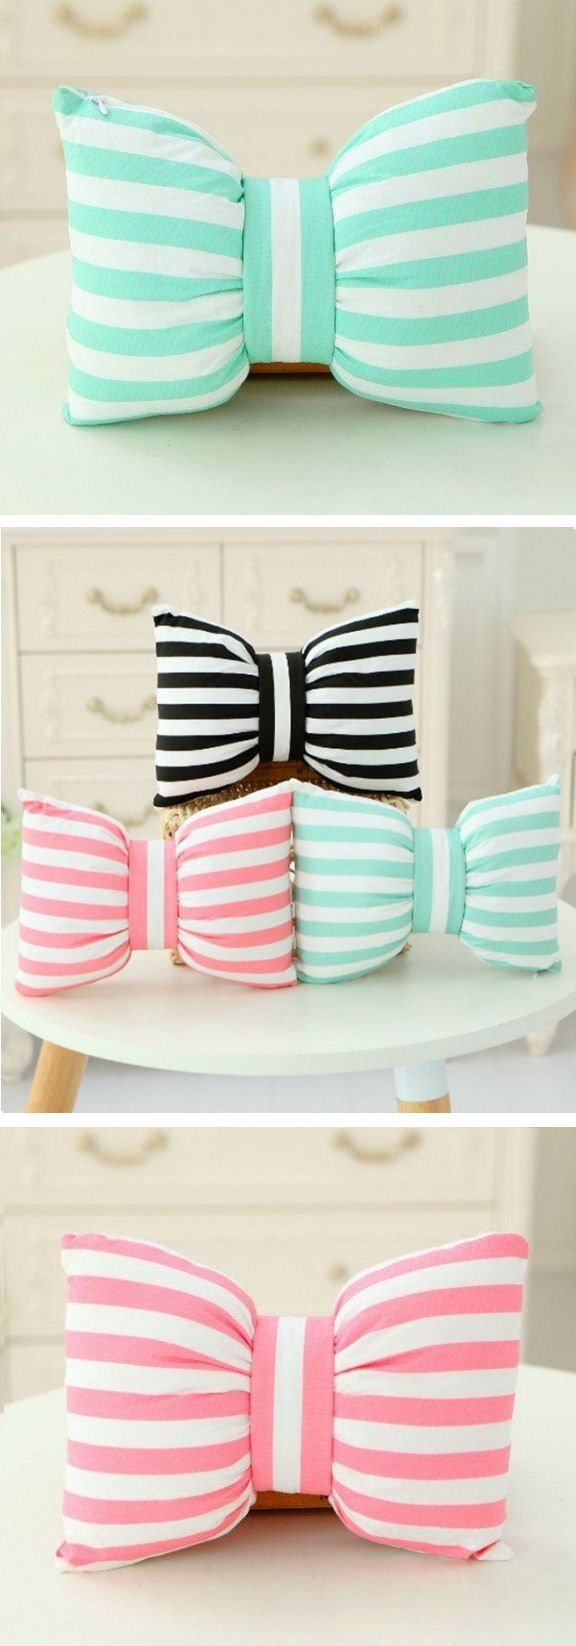 Cute diy room decor pinterest cute stripe bowknot pillows  by wteresa  home decor  pinterest